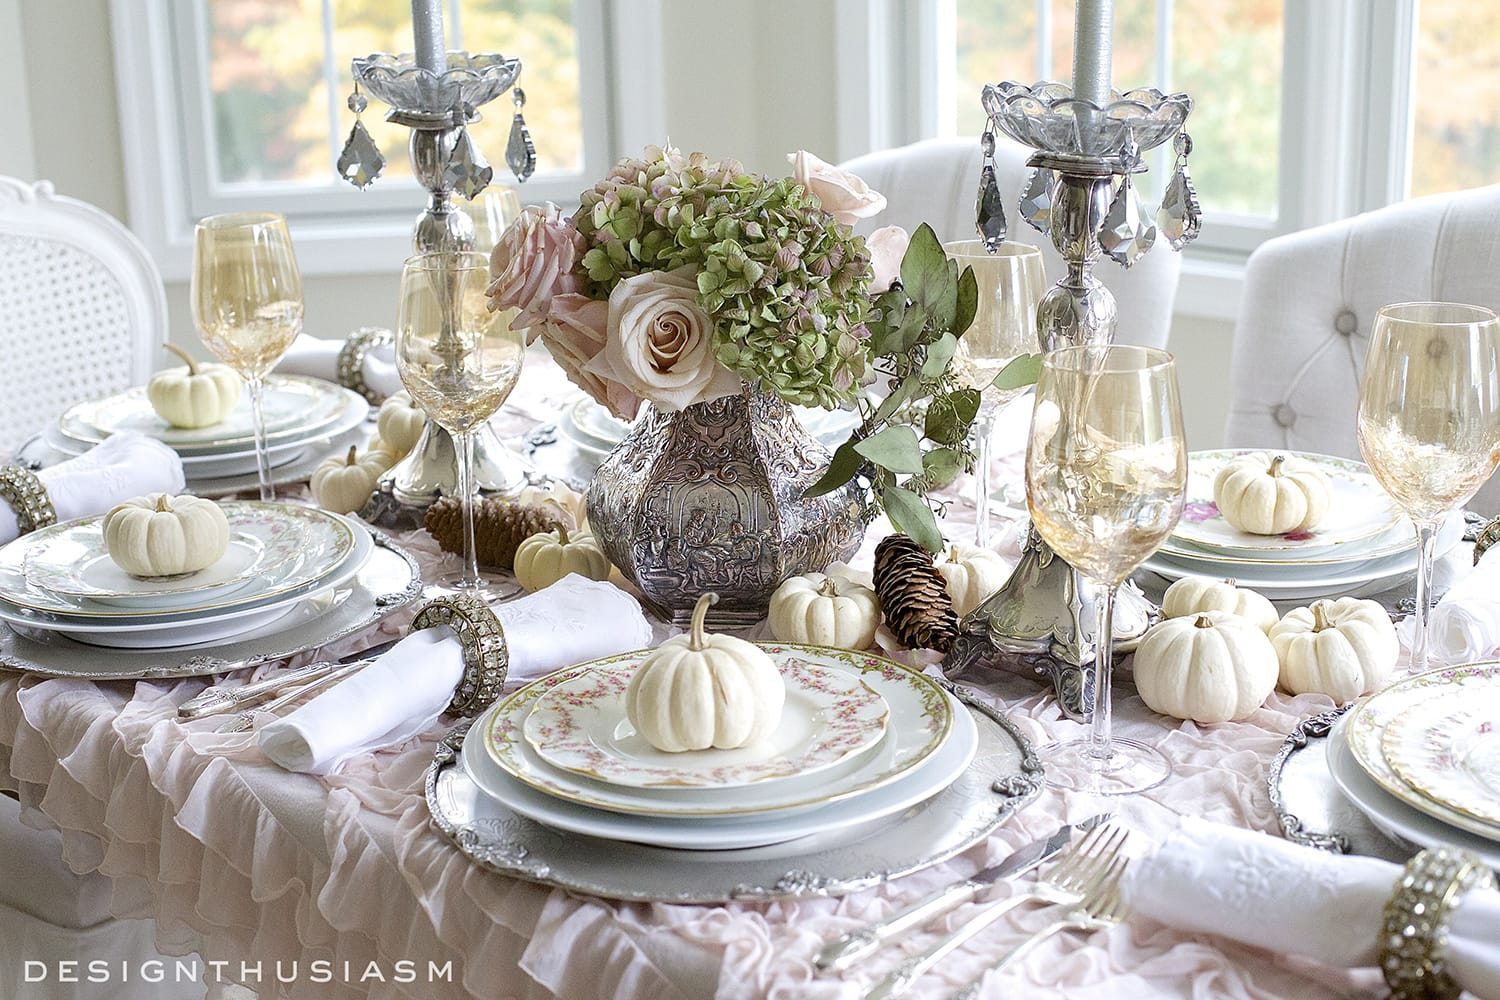 seasonal-tablescaping-with-designthusiasm-07